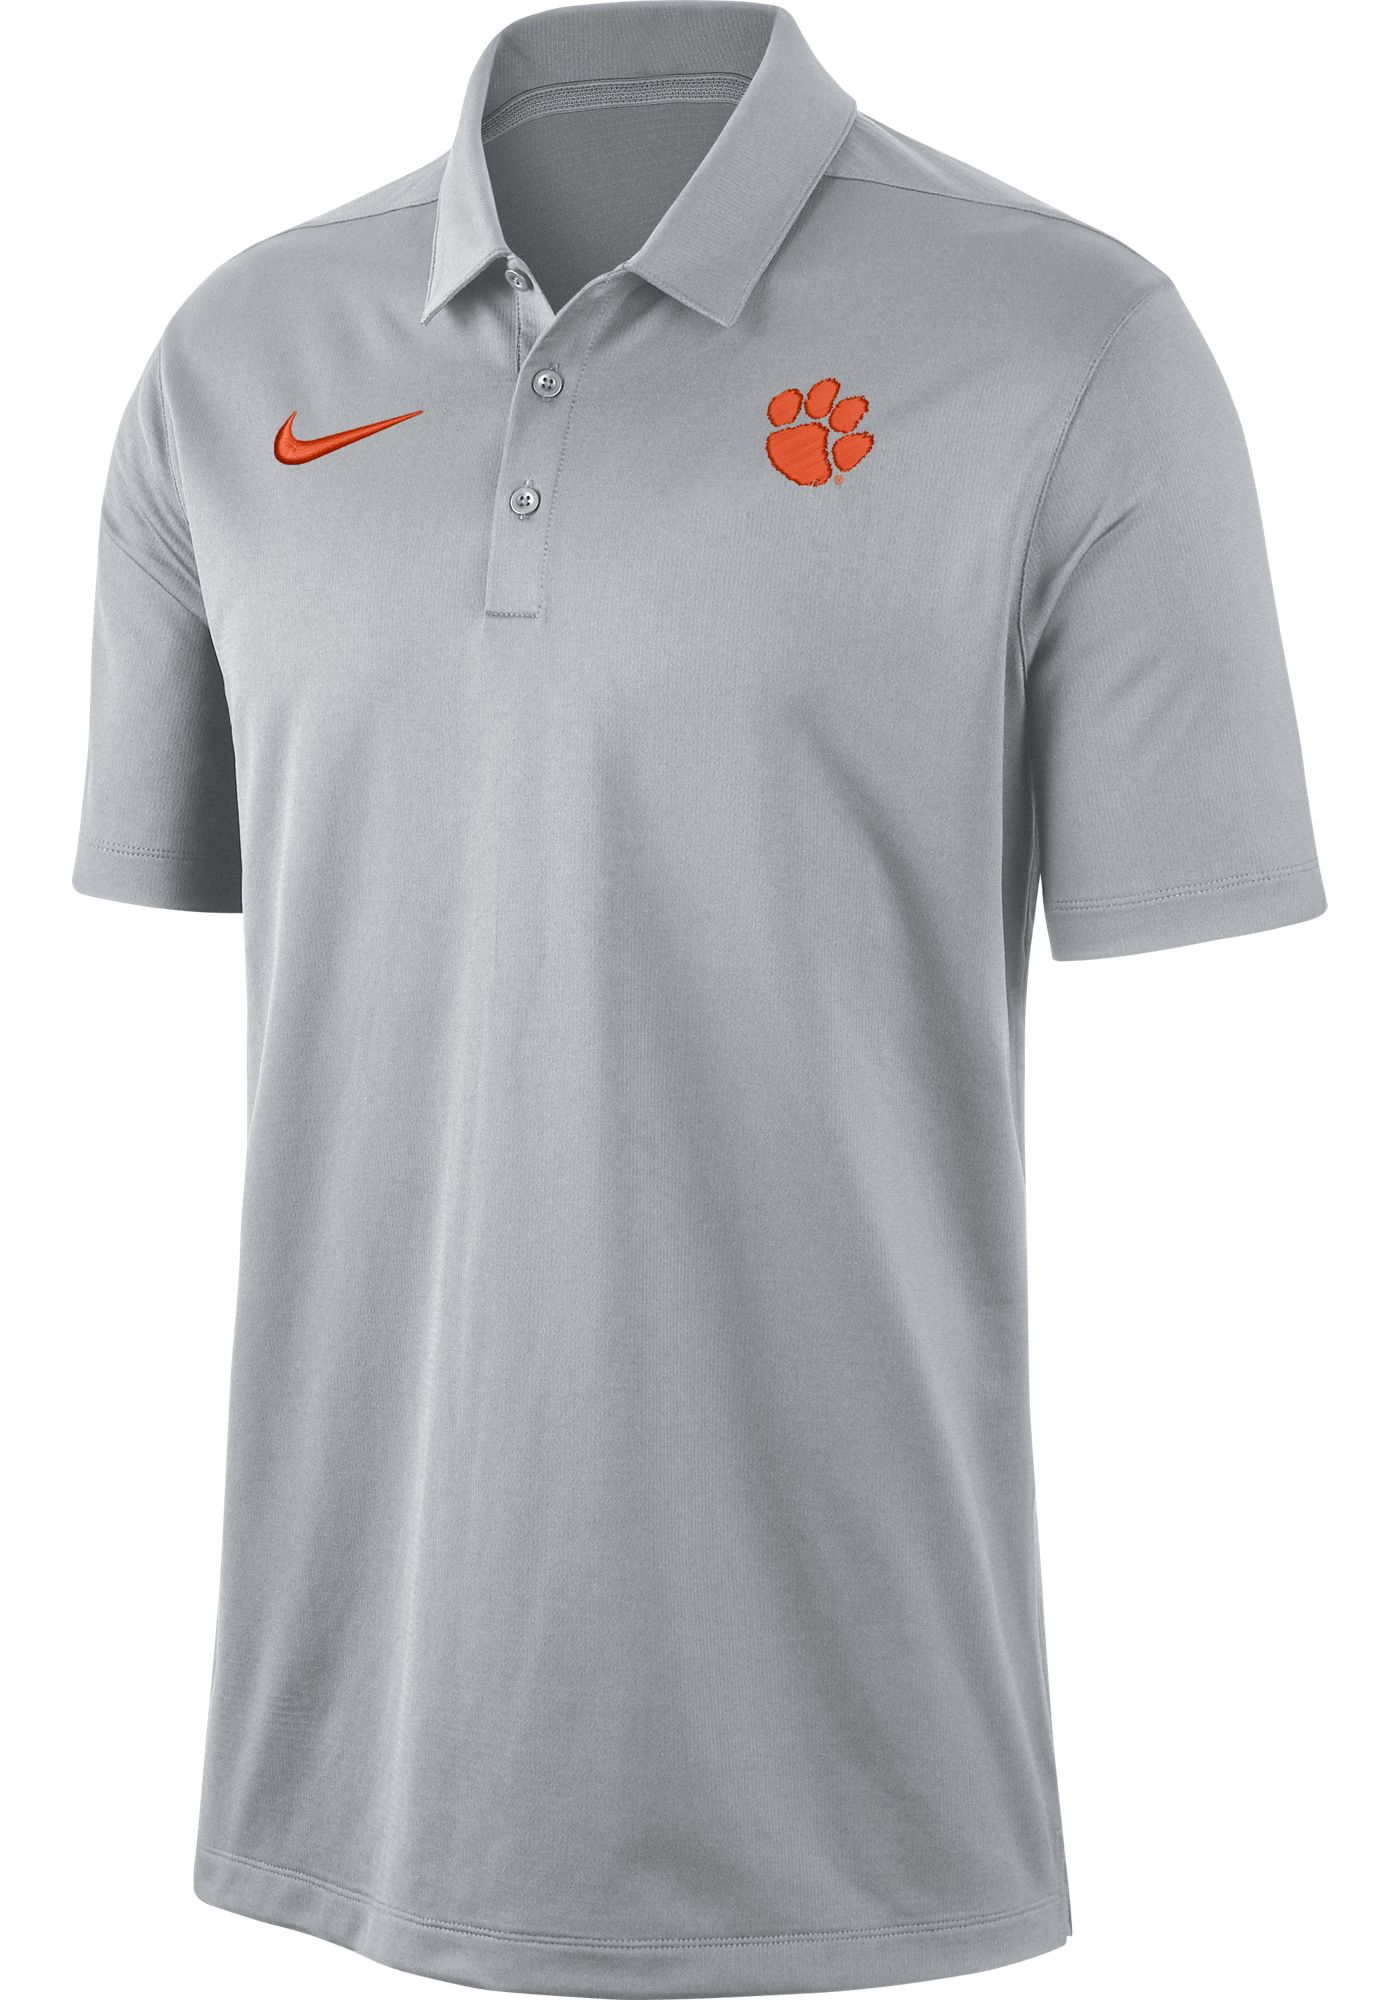 Nike Men's Clemson Tigers Grey Dri-FIT Franchise Polo